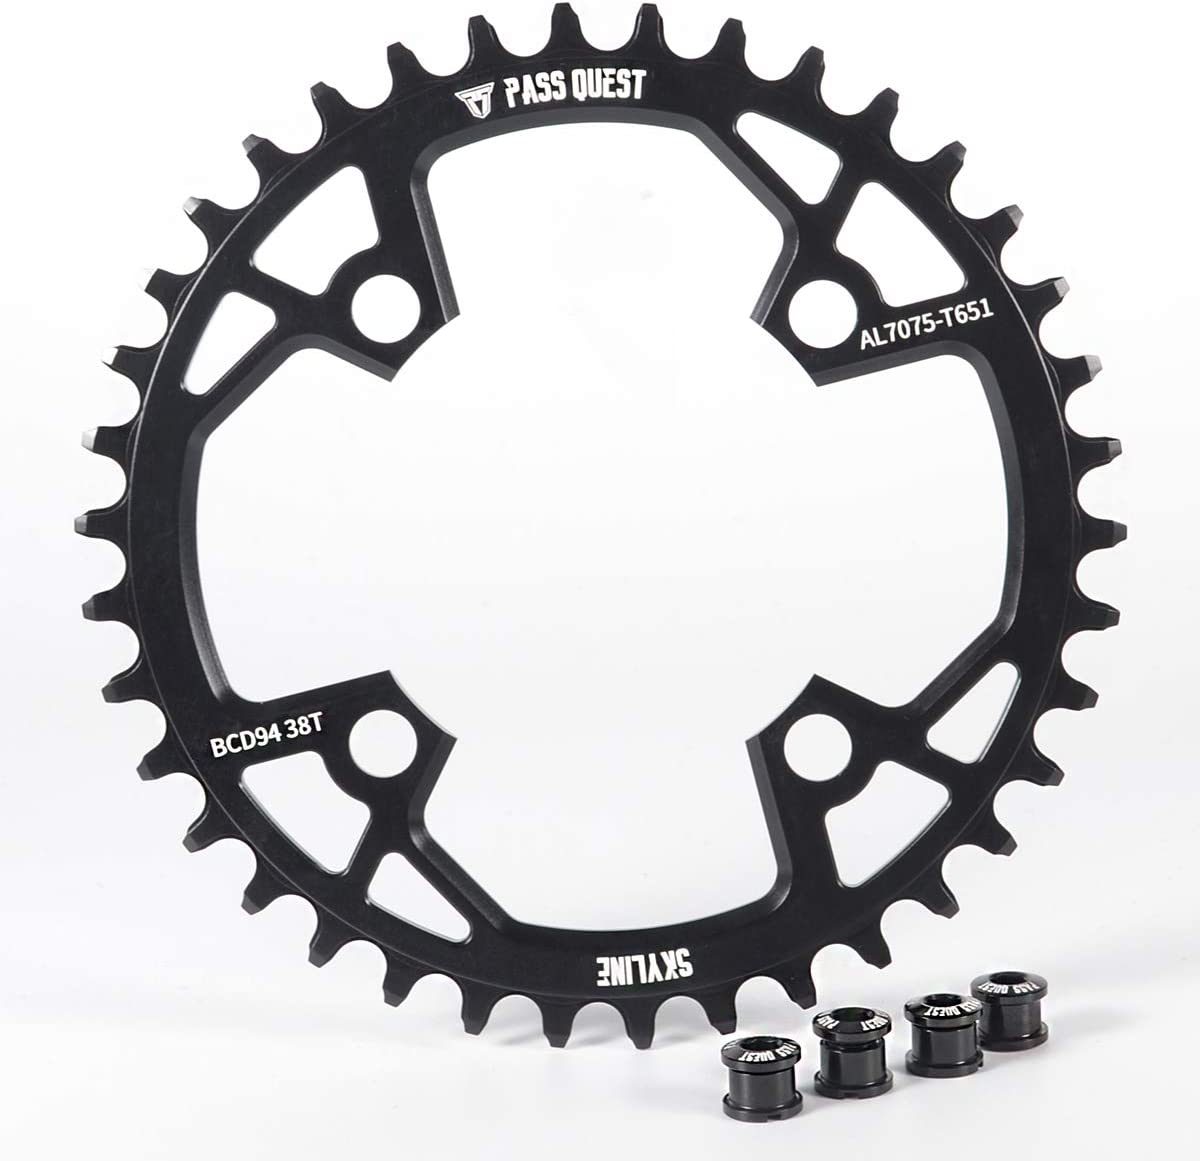 PASS QUEST 94BCD MTB Narrow Wide Chainring//Chain Ring 32T//34T//36T//38TBike Bicycle Chainwheel//Chain Wheel Crankset